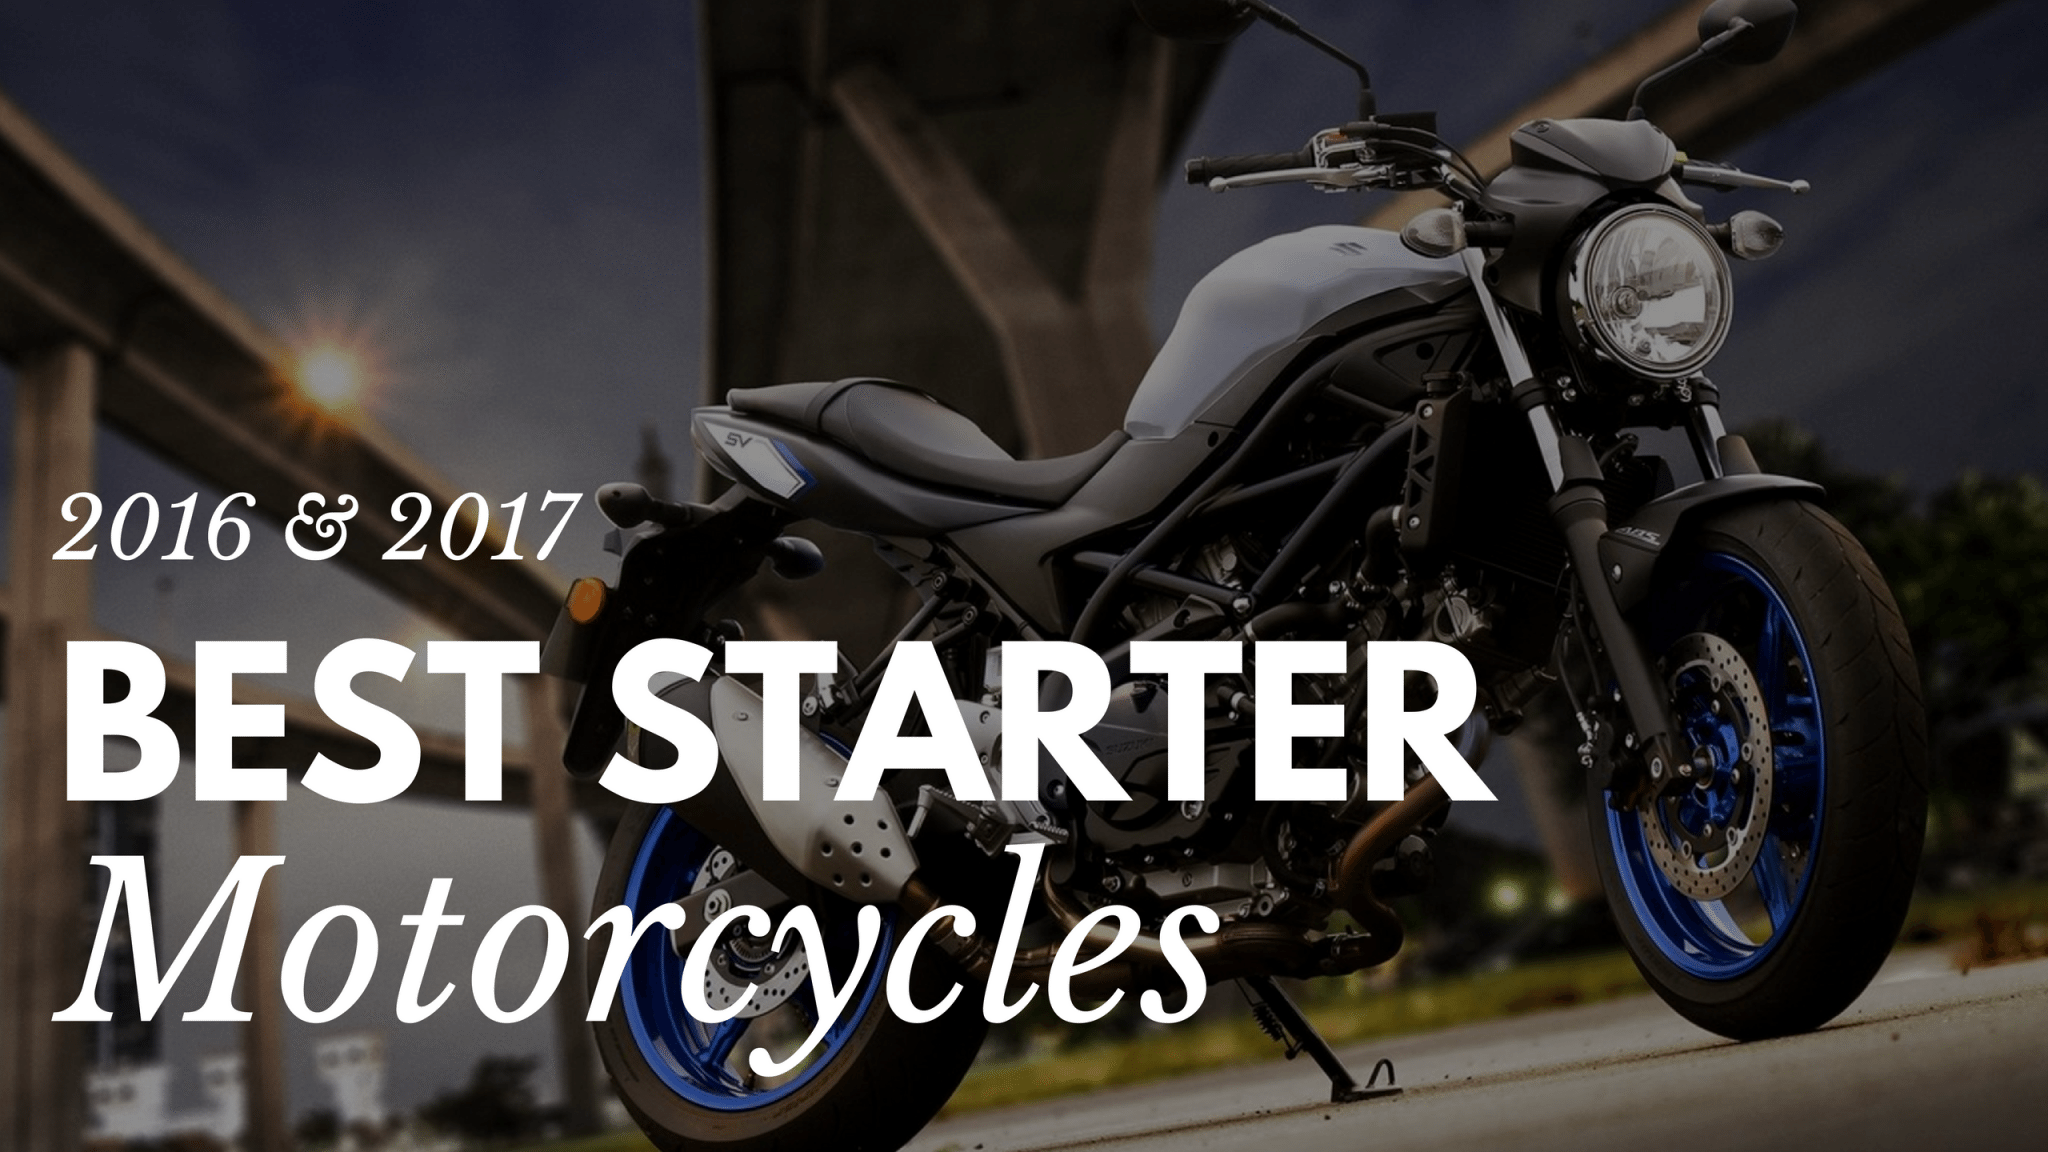 Best starter motorcycles in 2016 and 2017 2017 best starter motorcycles fandeluxe Images